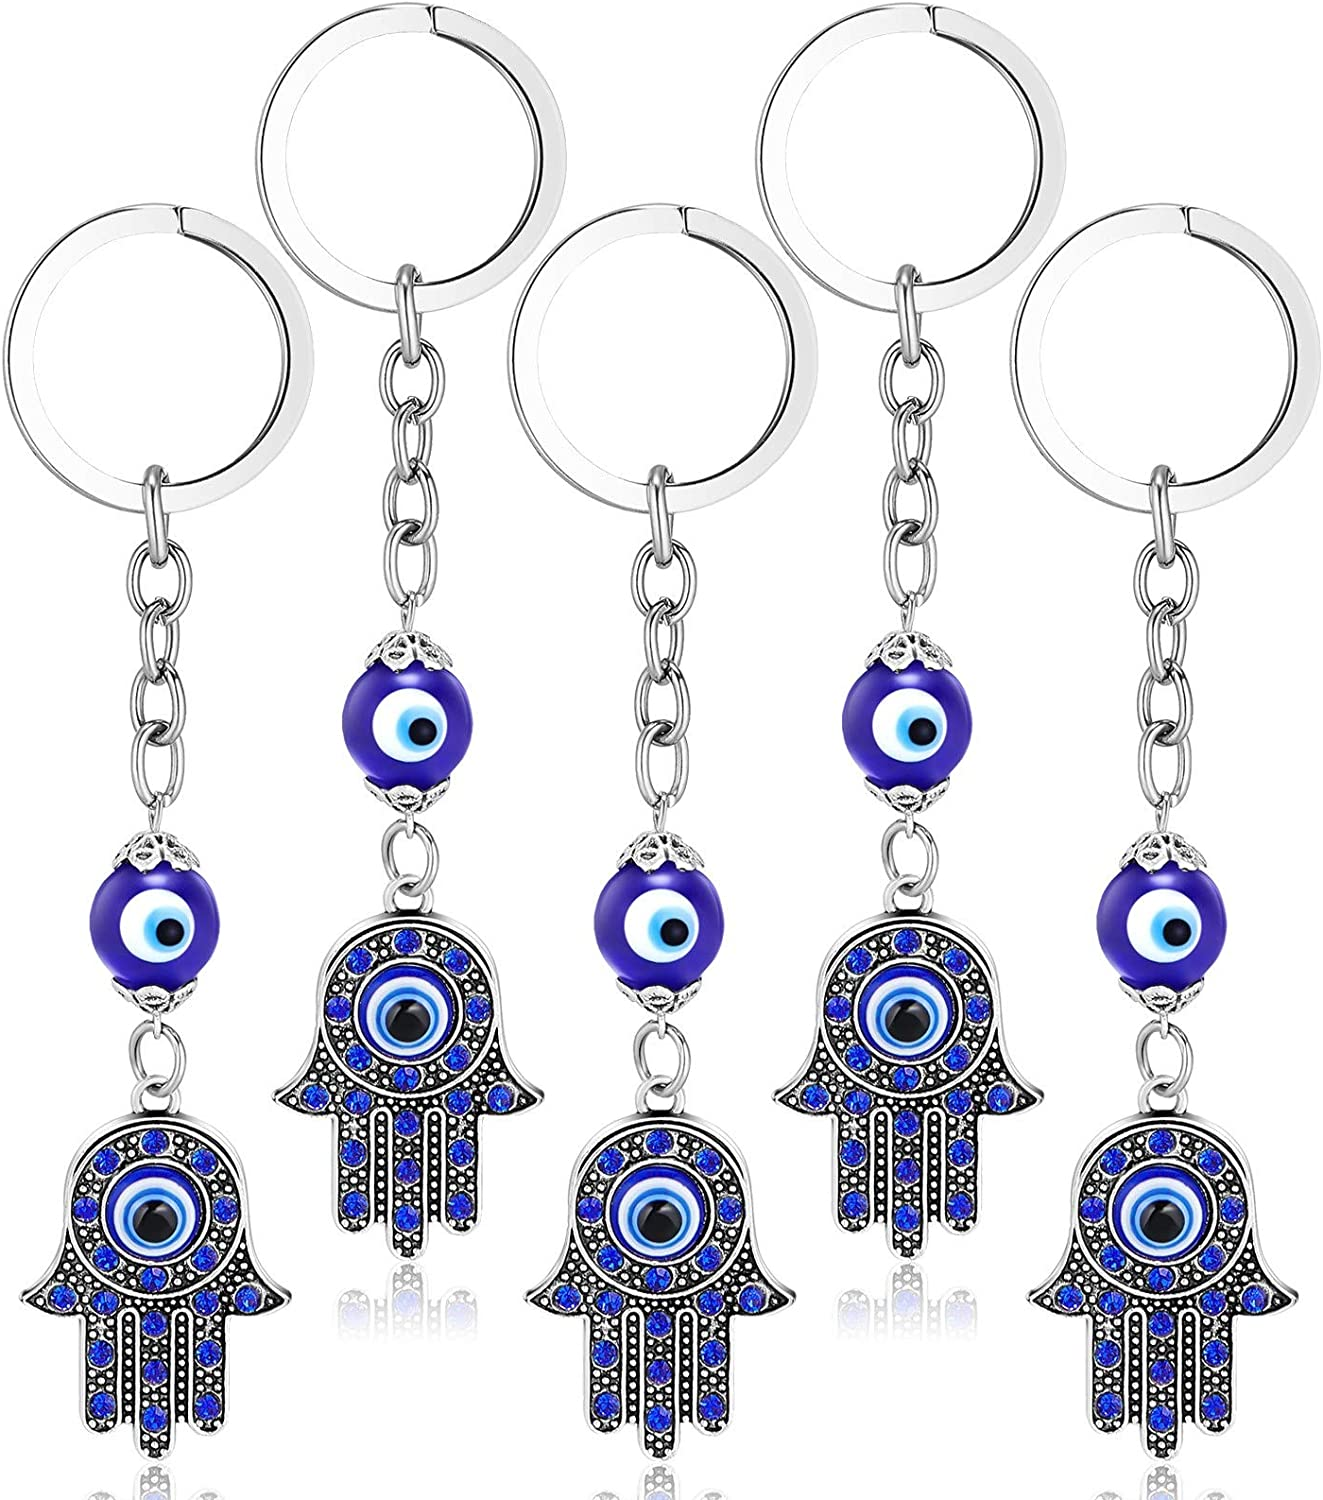 5 Pieces Hamsa Hand Keychain Evil Eye Silver Keychain Fatima Protection Charms Blue Good Luck Key Holder for Attaching to Keys and Bags